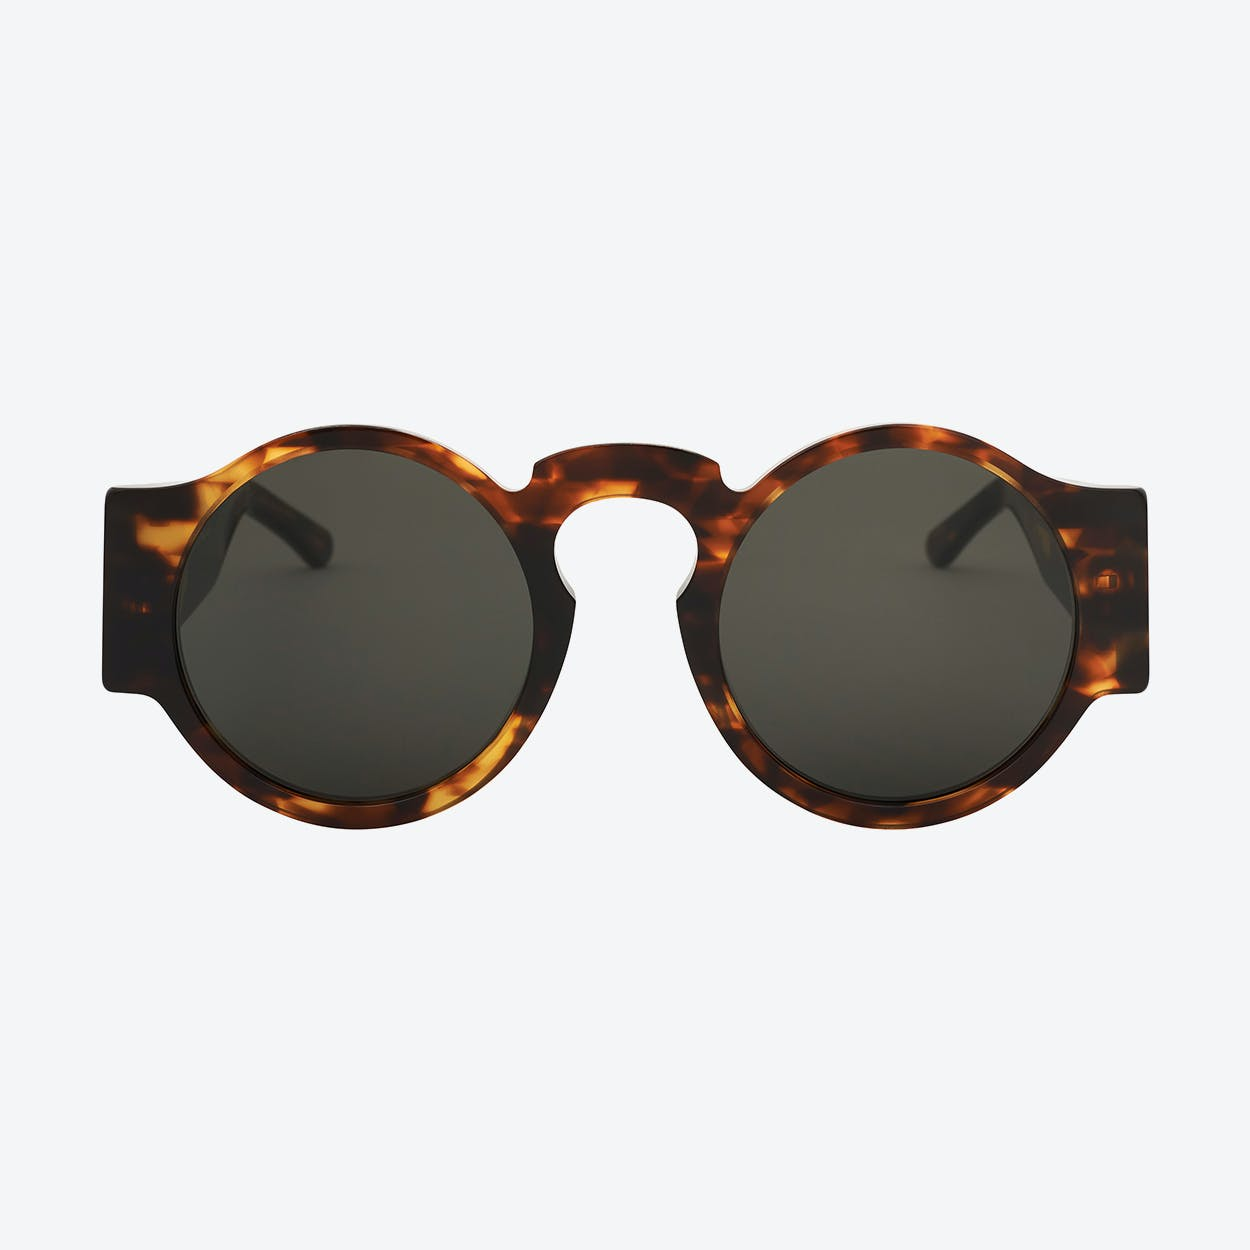 Didac Sunglasses in Tortoise